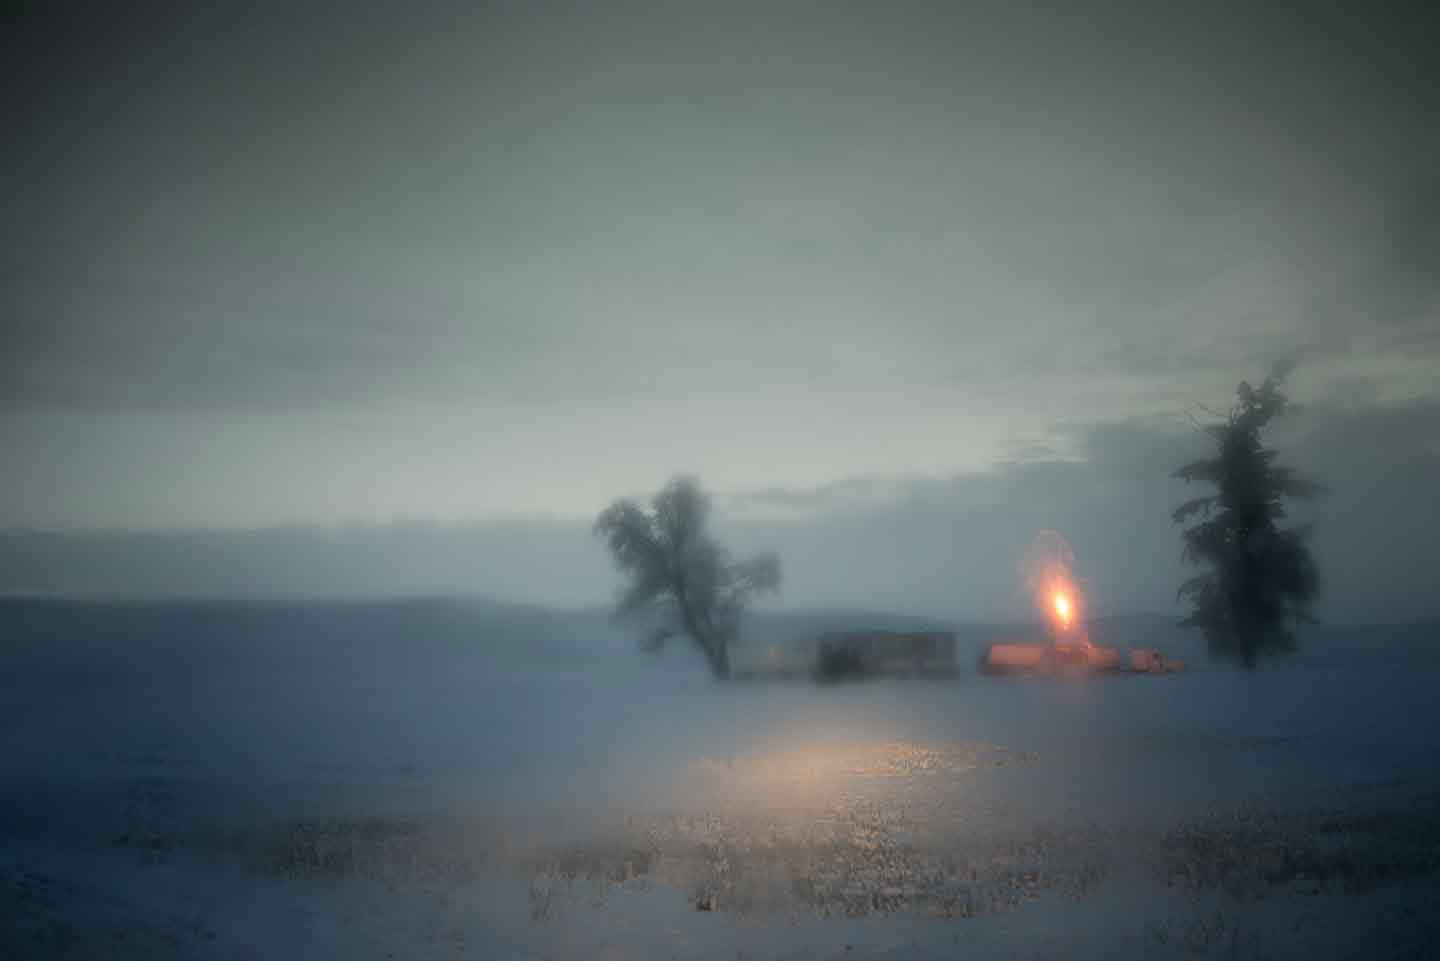 "Todd Hido: #11176-7589, 2014, ed. #2/12 (11-1/2x17-inch Original Archival Pigment Print from ""Bright Black World"" Series)"